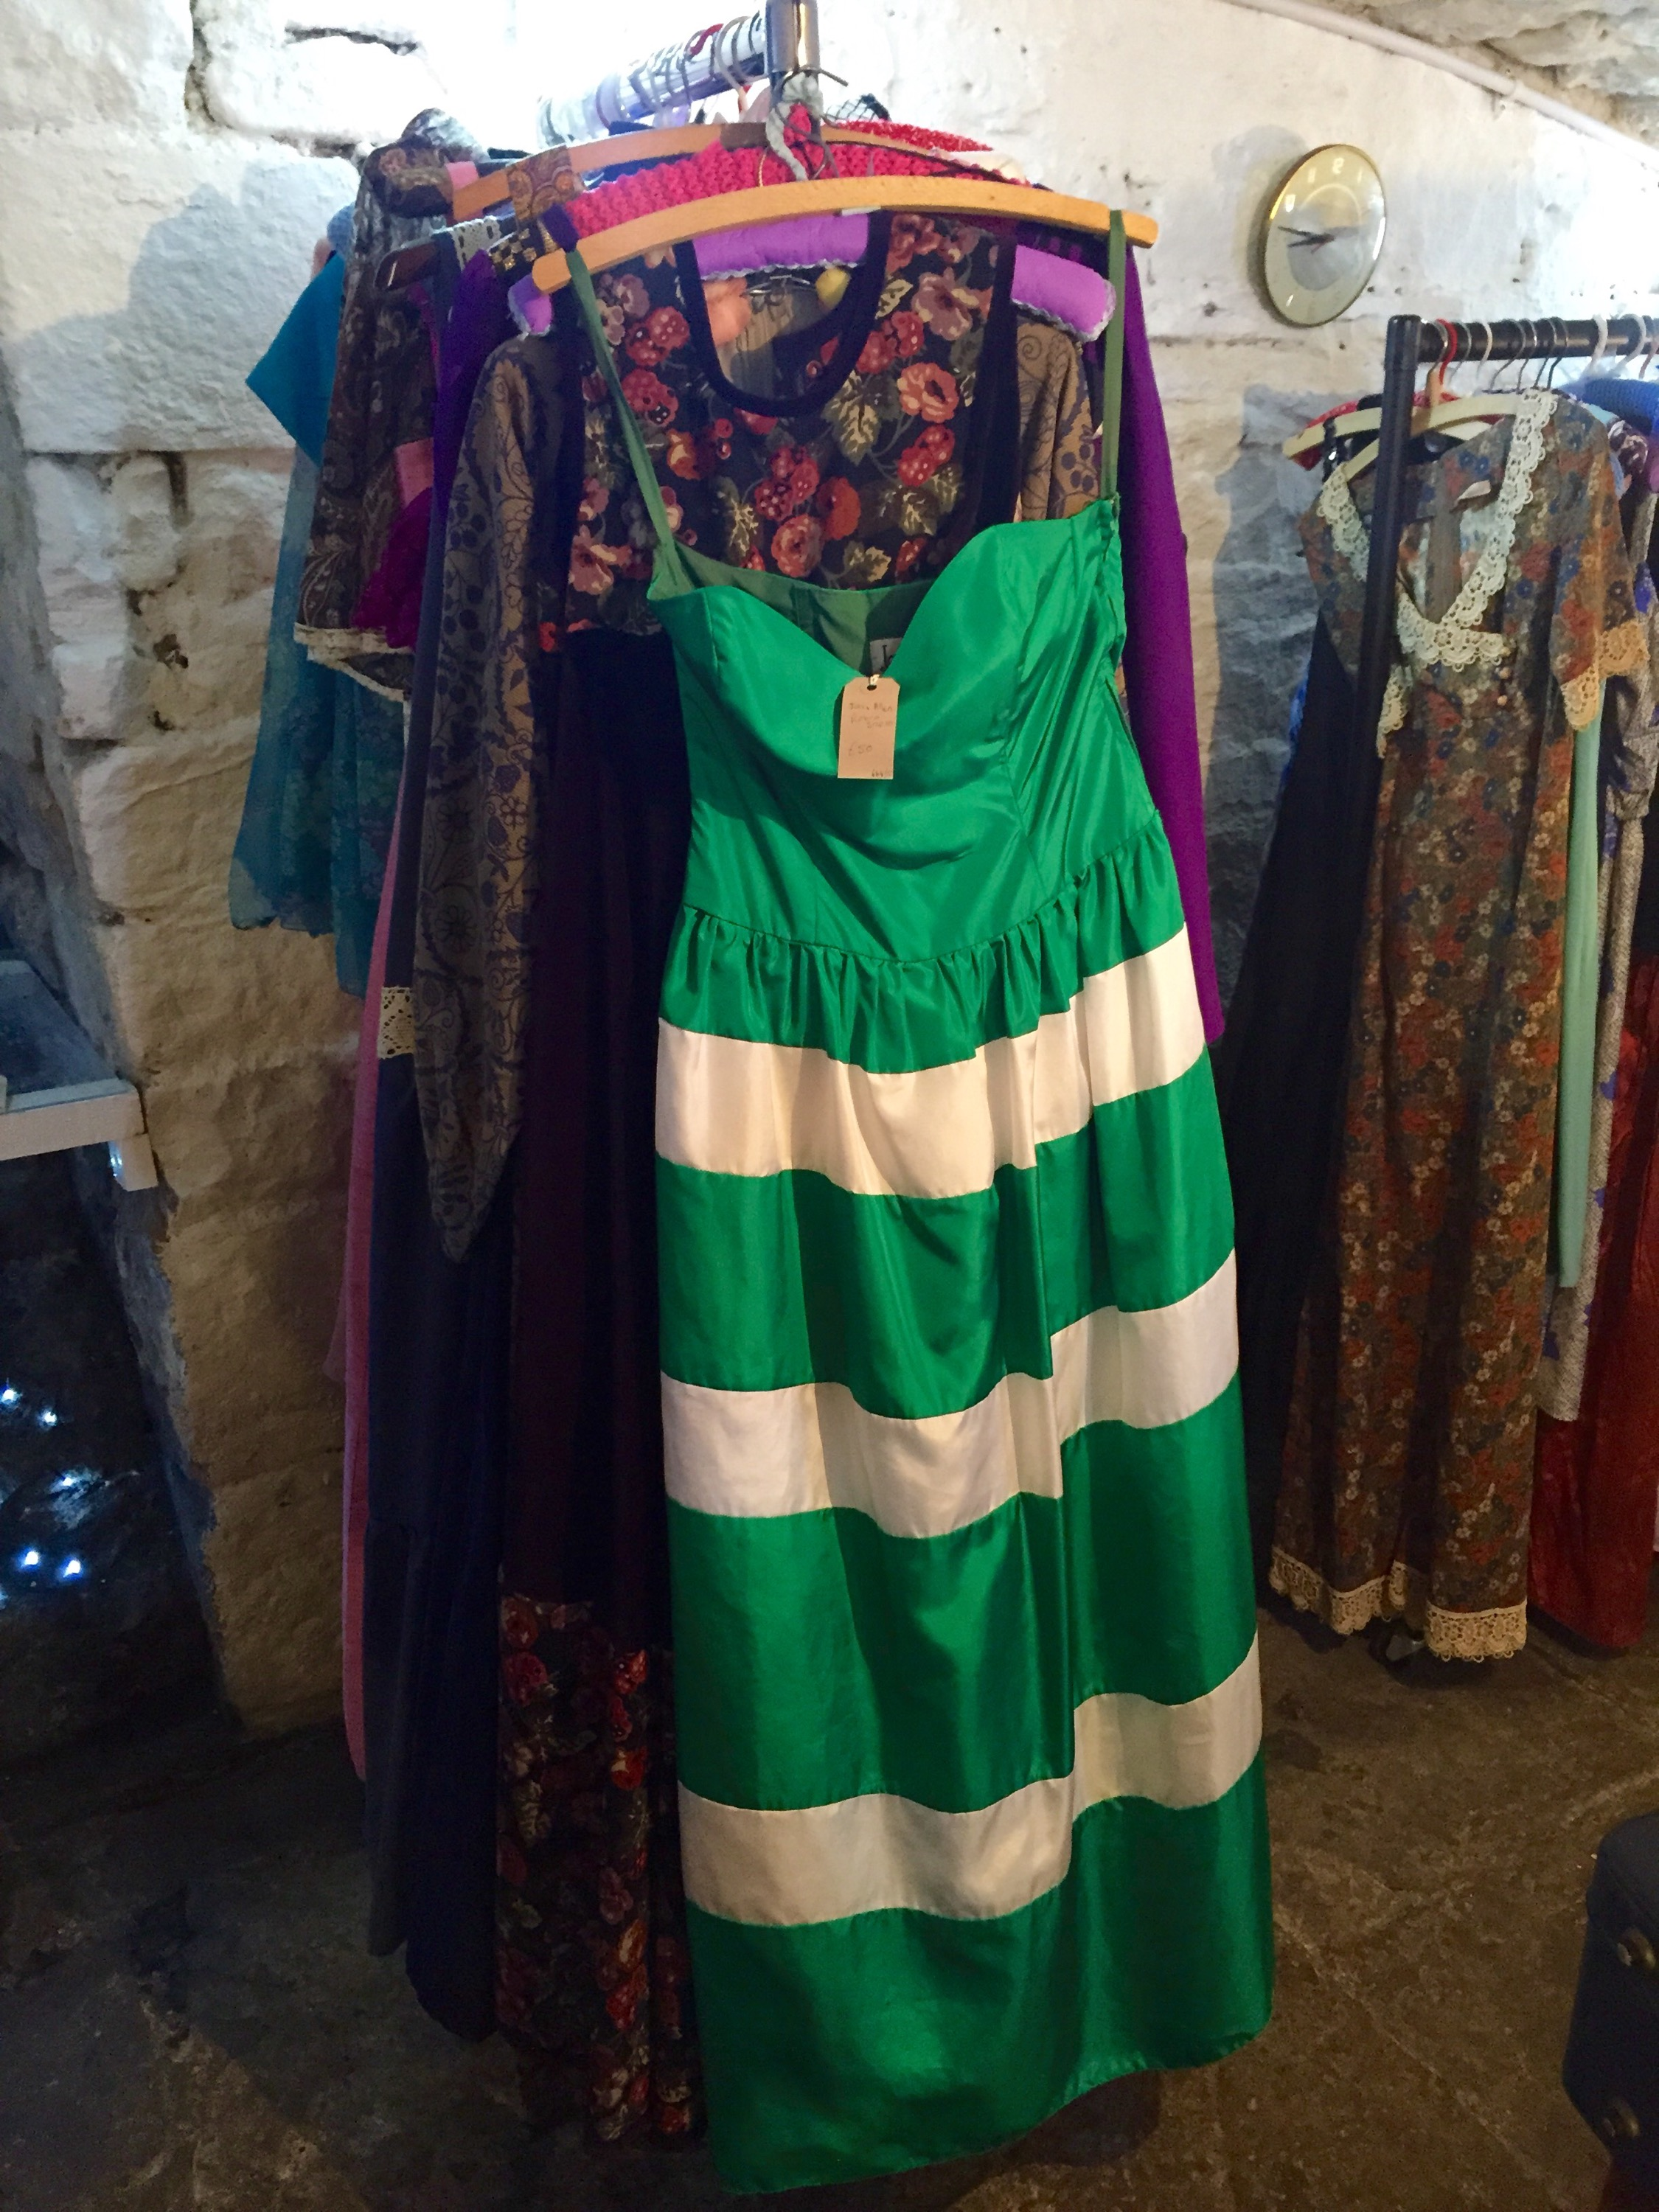 The dress agency - Its Basically A Community Interest Company Leah Invites Clients To Bring In Good Quality Clothing And Accessories Which When Sold The Dress Agency Takes